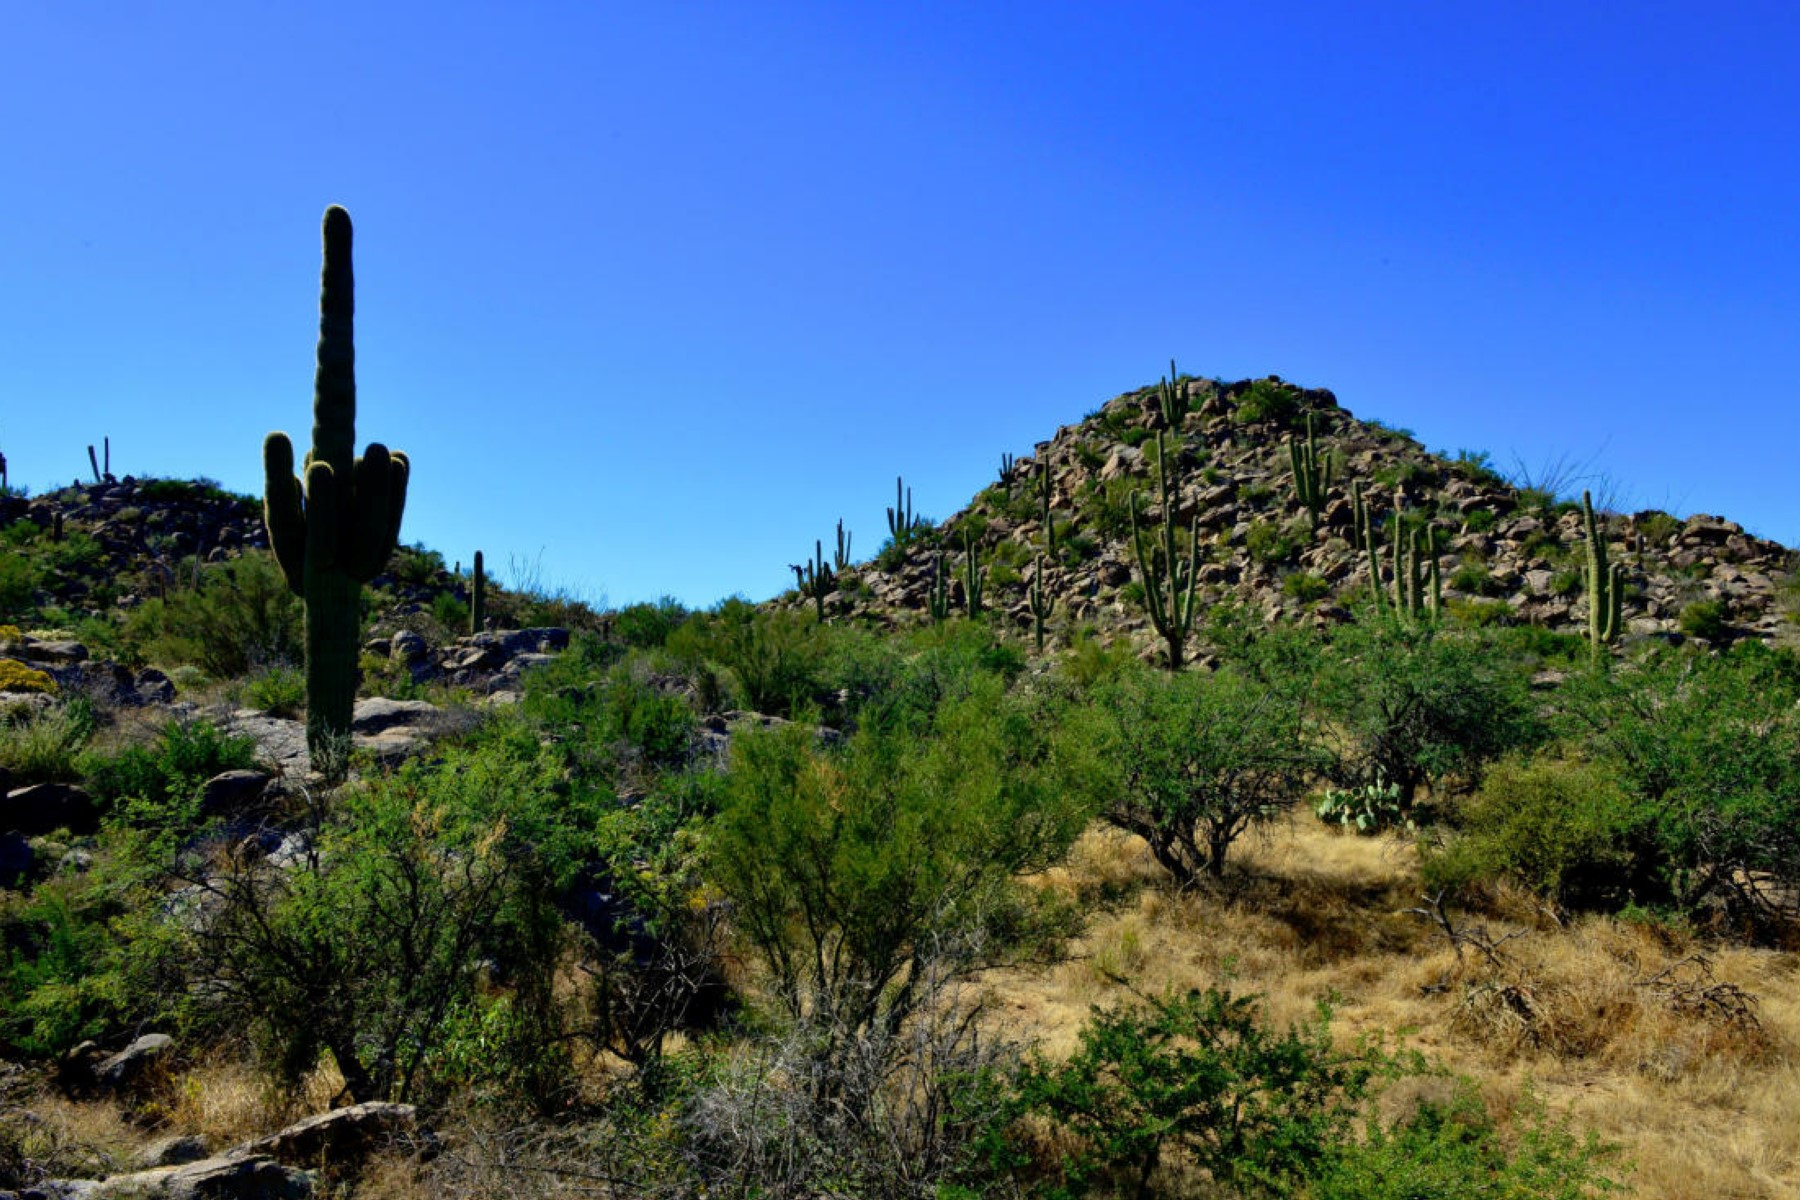 Land for Sale at Private Homesite With Dramatic Rock Outcroppings, Saguaros & Mountain Views 953 W Granite Gorge Drive W #321 Oro Valley, Arizona 85755 United States